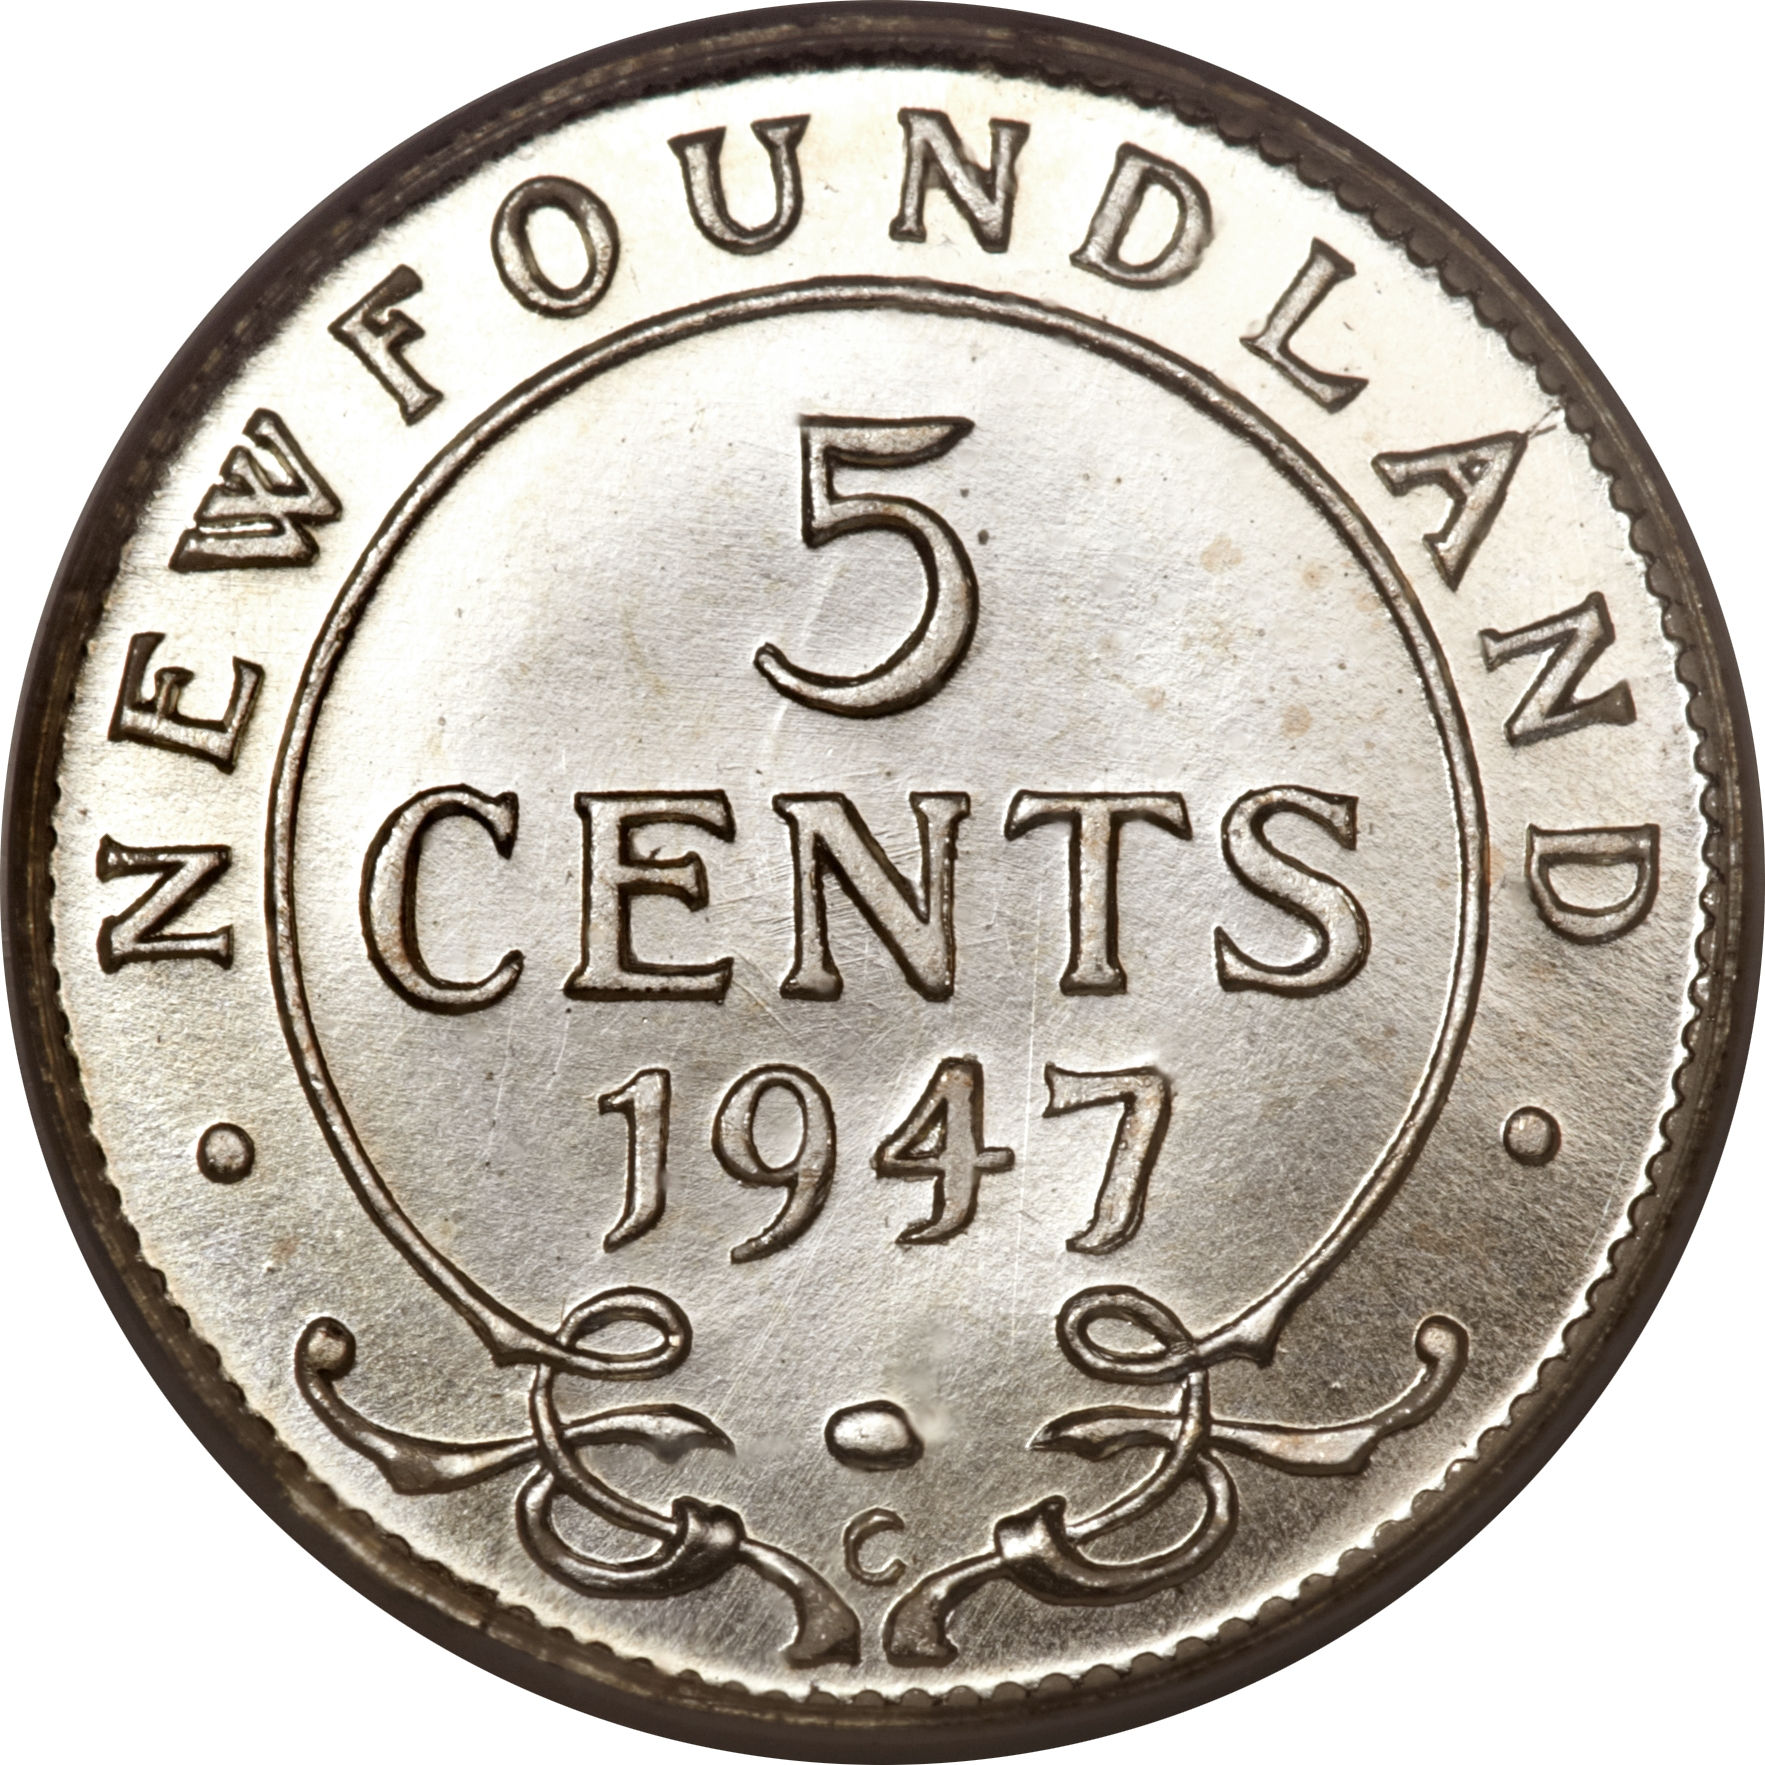 1 Coin Only 1944-C Newfoundland 5 Cent Silver! Circulated Many Available